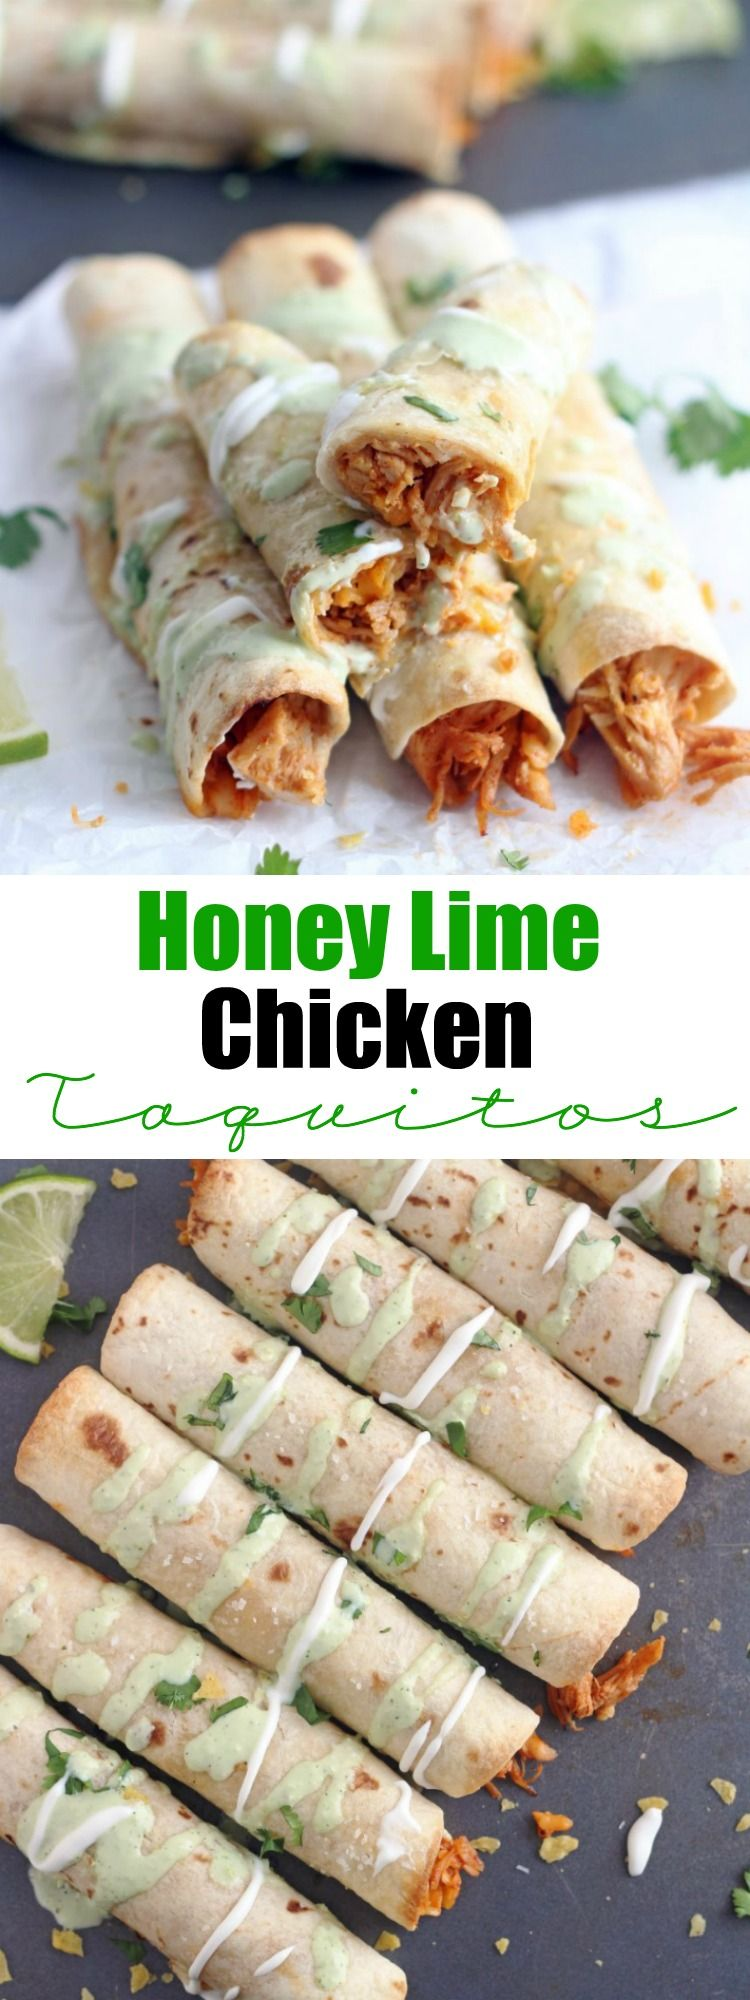 Baked Honey Lime Chicken Taquitos – 5 Boys Baker